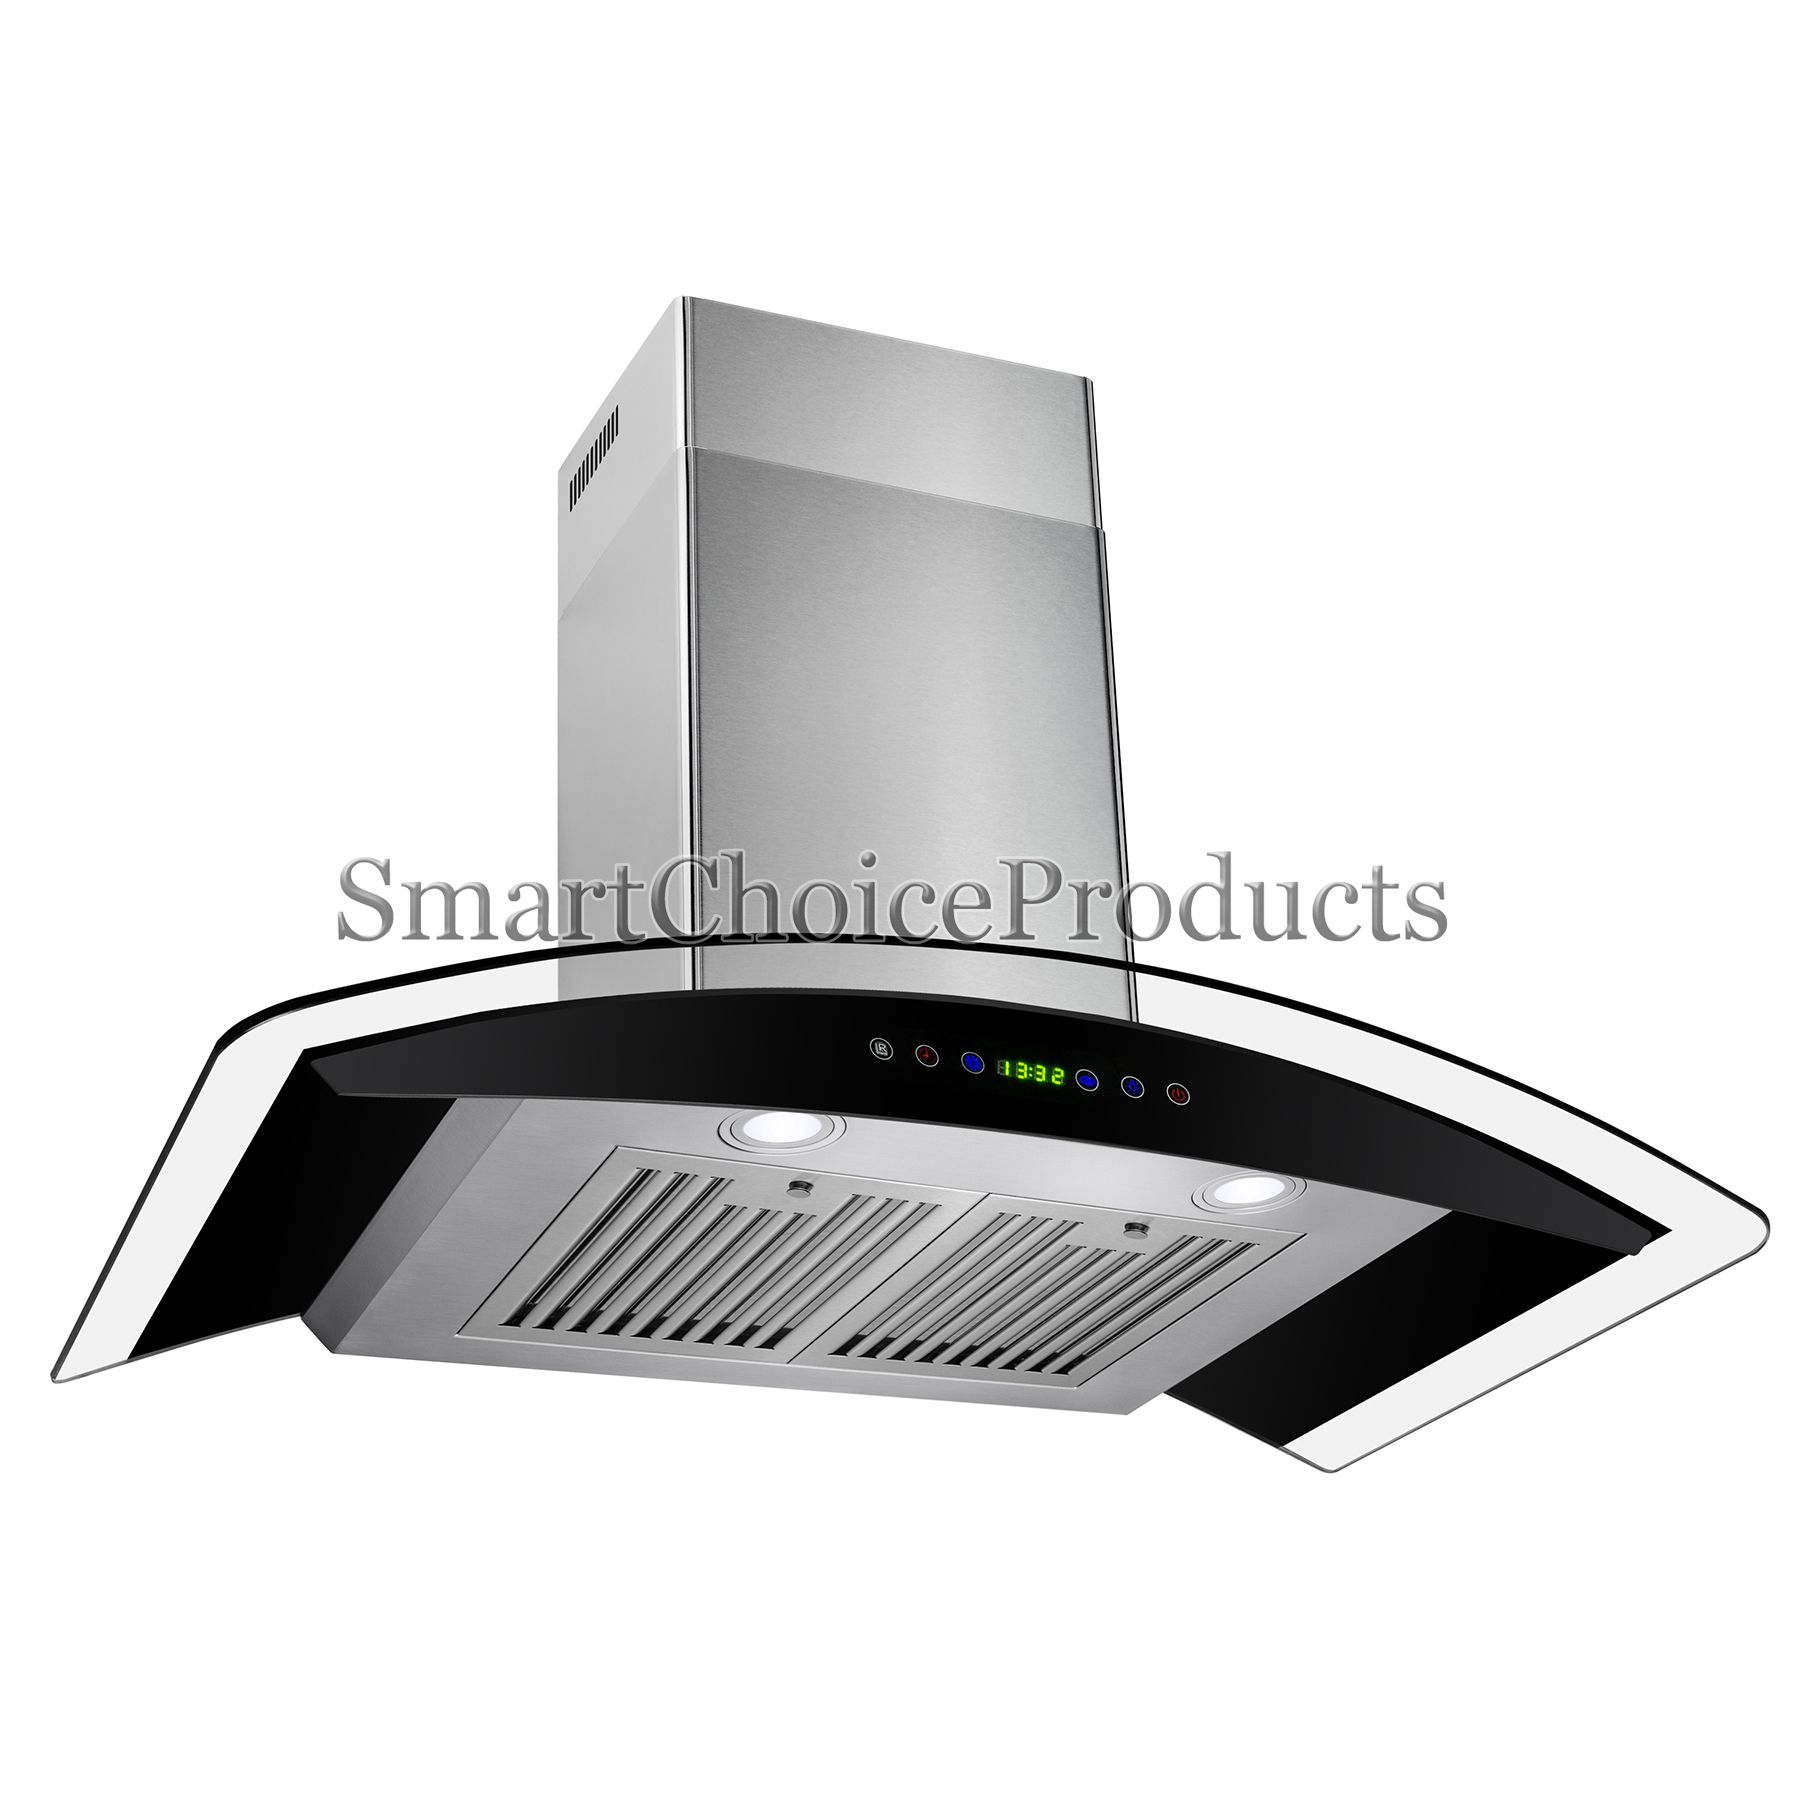 duct size pc desktop kitchen vintage mounted yonkoutei high through quality pics ceiling hood photos fad mobile parts hd of httpyonkoutei ventilation the phones wall fan exhaust full